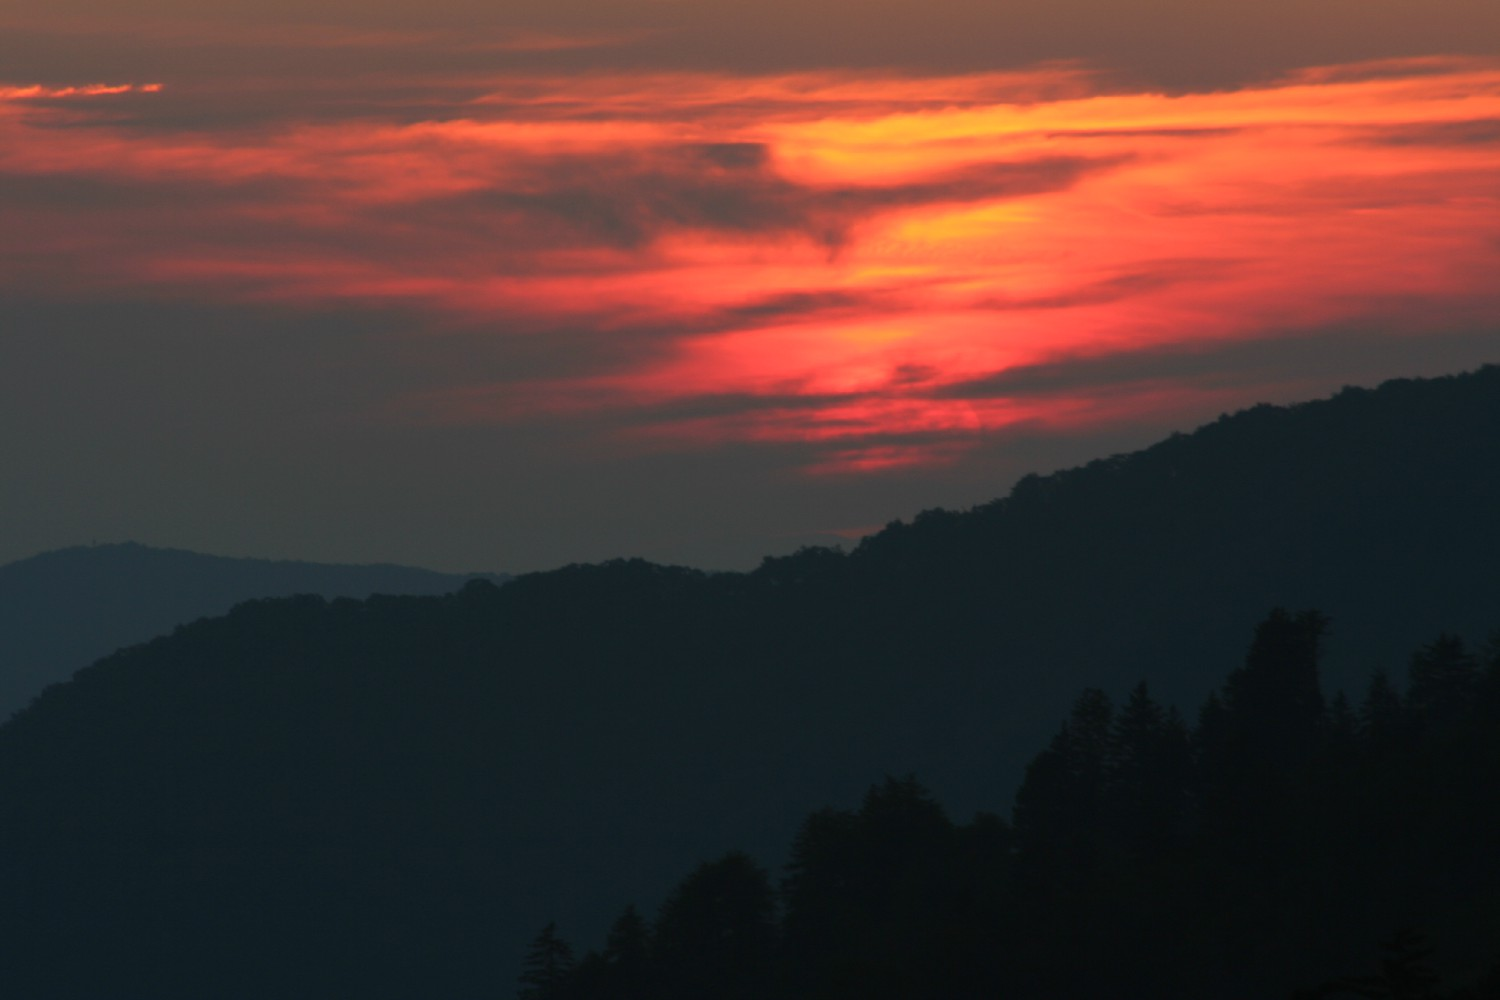 smokies sunset author szulecki joshua